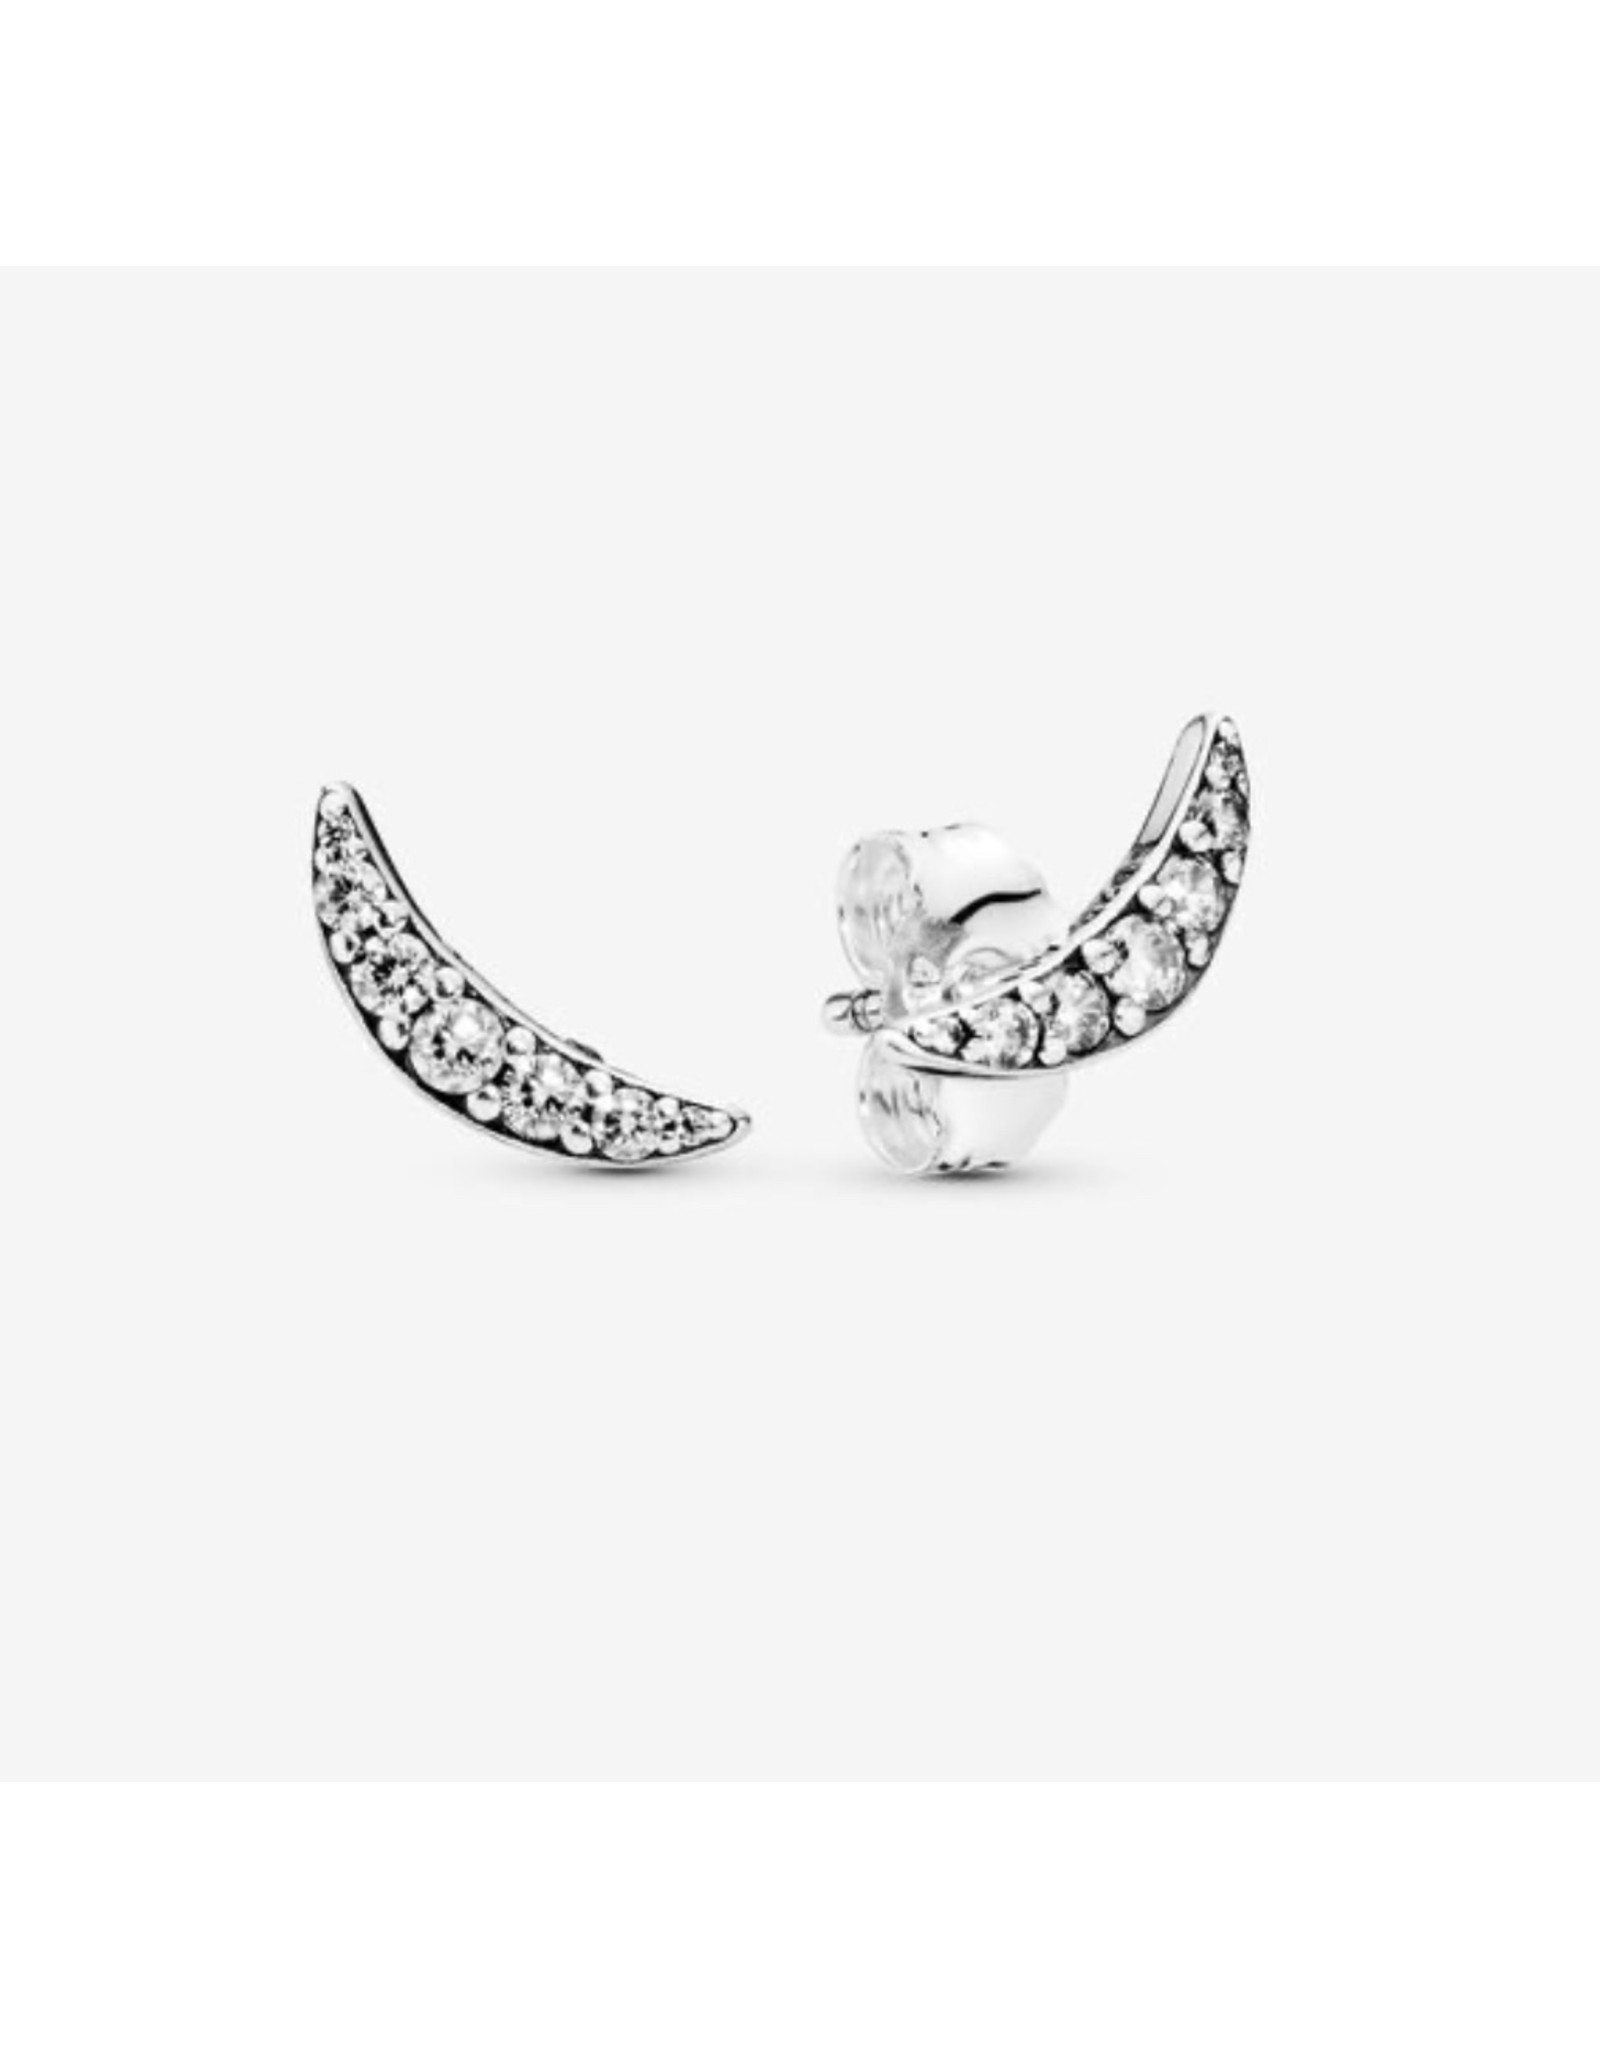 Pandora Pandora Earrings, 297569CZ,Sparkling Crescent Moon Stud, Sterling Silver Clear CZ